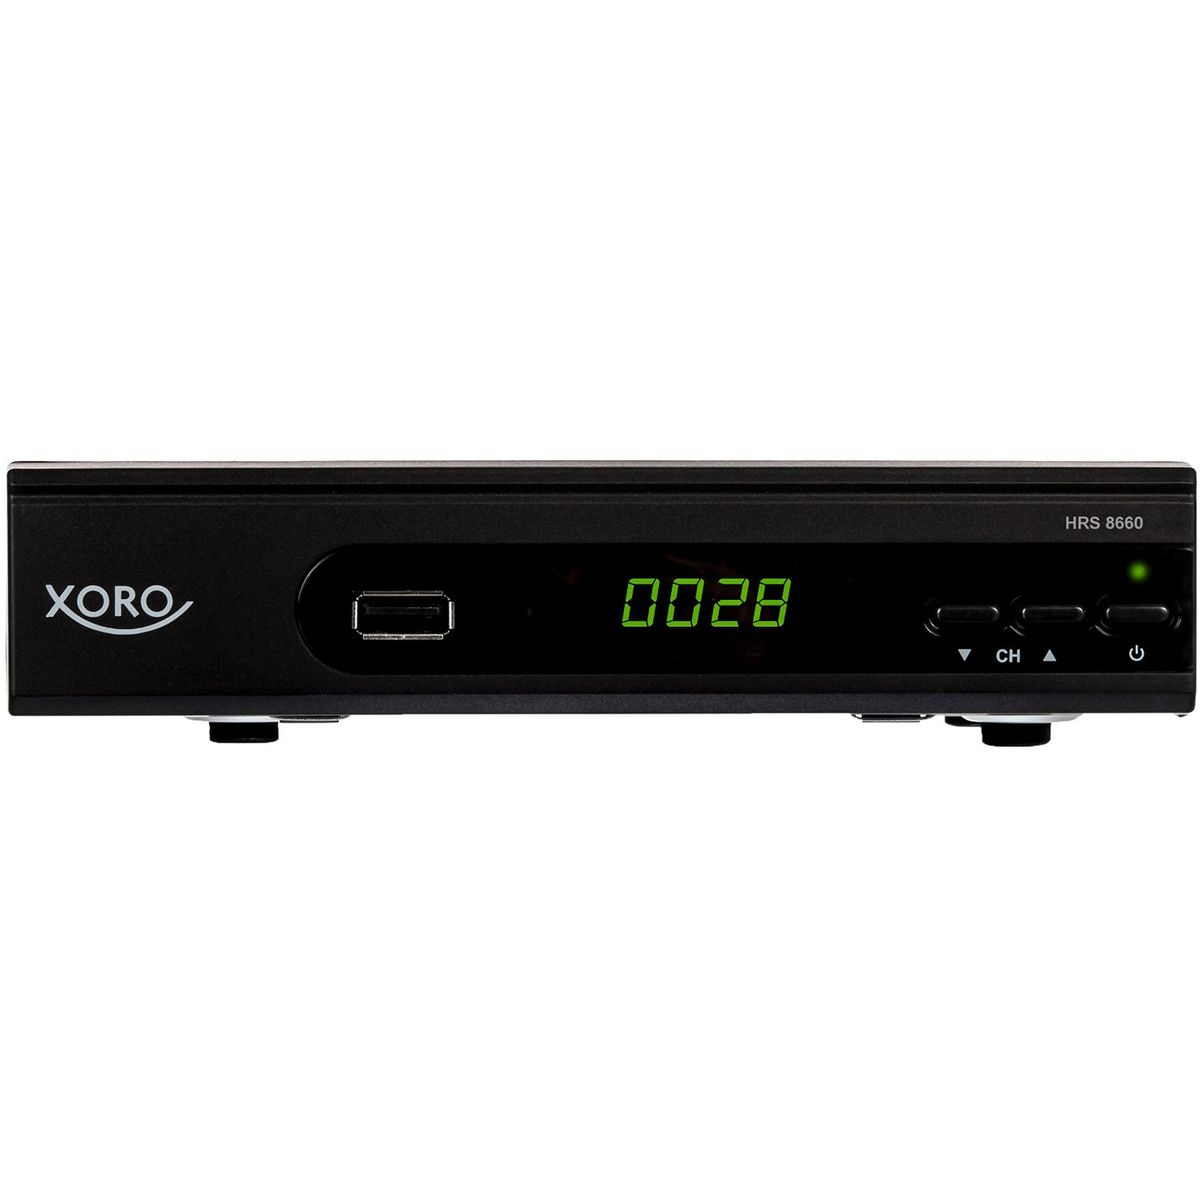 Xoro HRS 8660 digitaler Satelliten-Receiver mit LAN Anschluss (HDTV, DVB-S2, HDMI, SCART, PVR-Ready, USB 2.0)